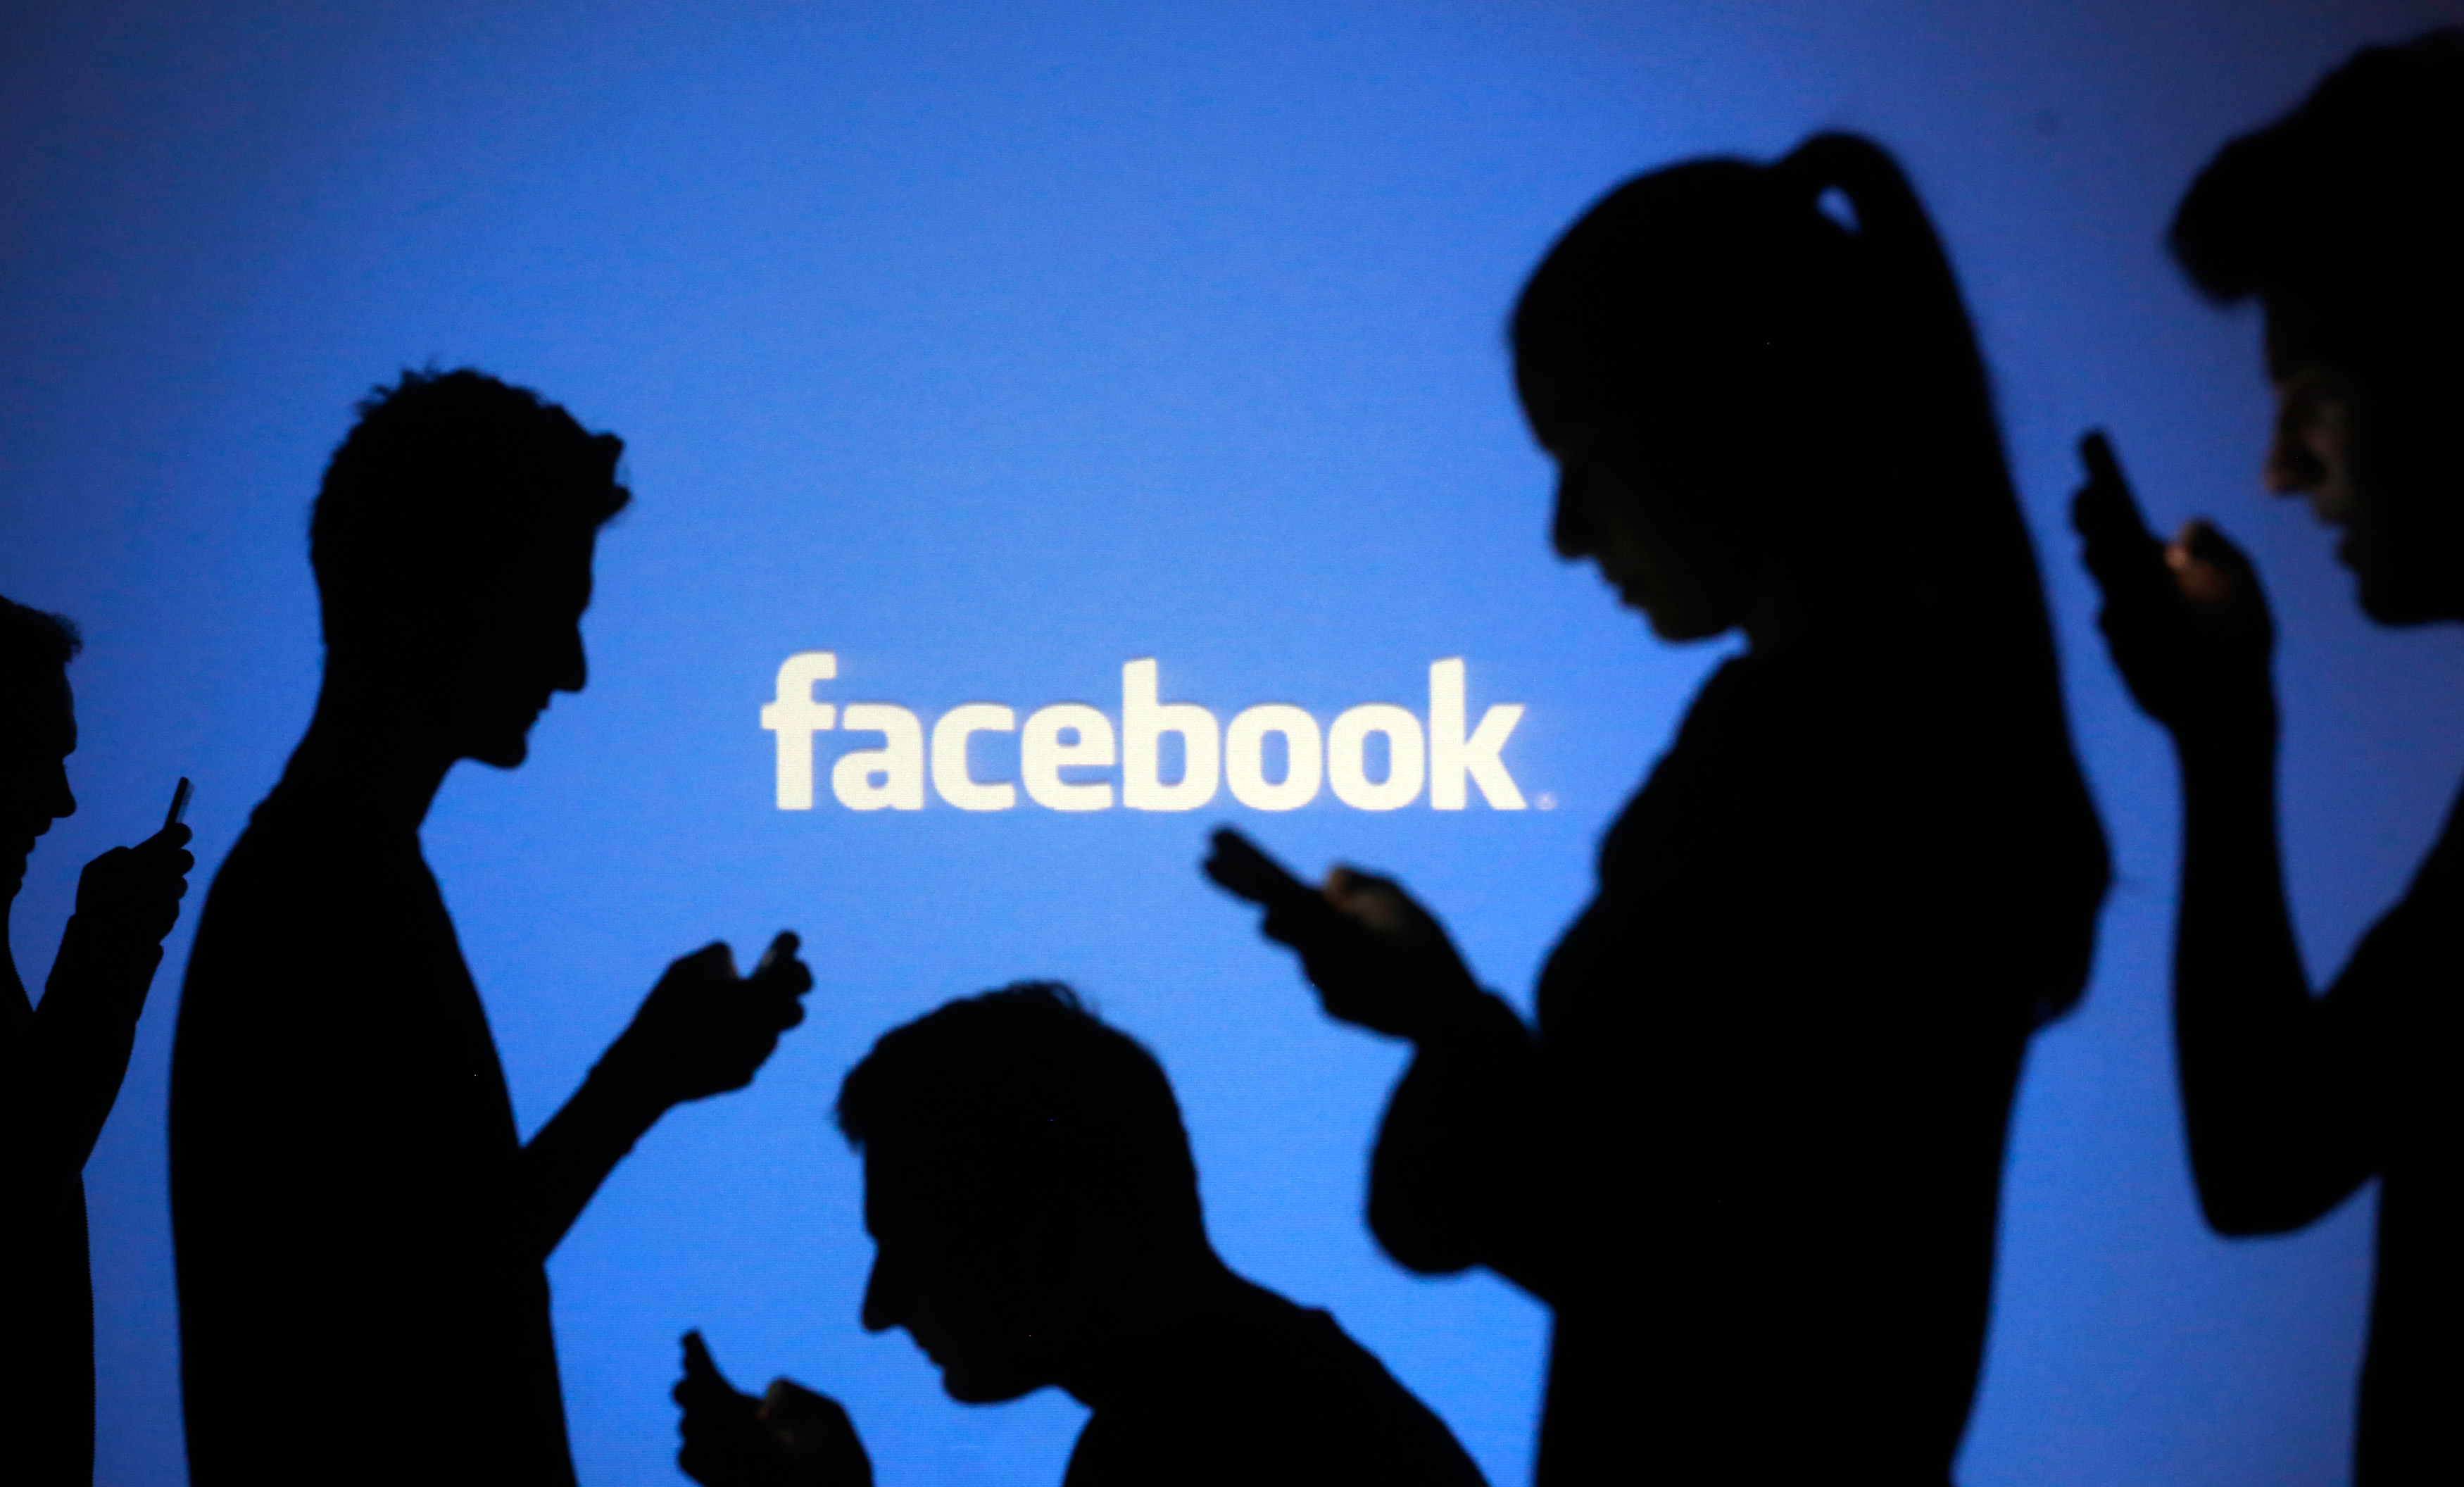 silhouettes of people using mobiles in front of FAcebook logo